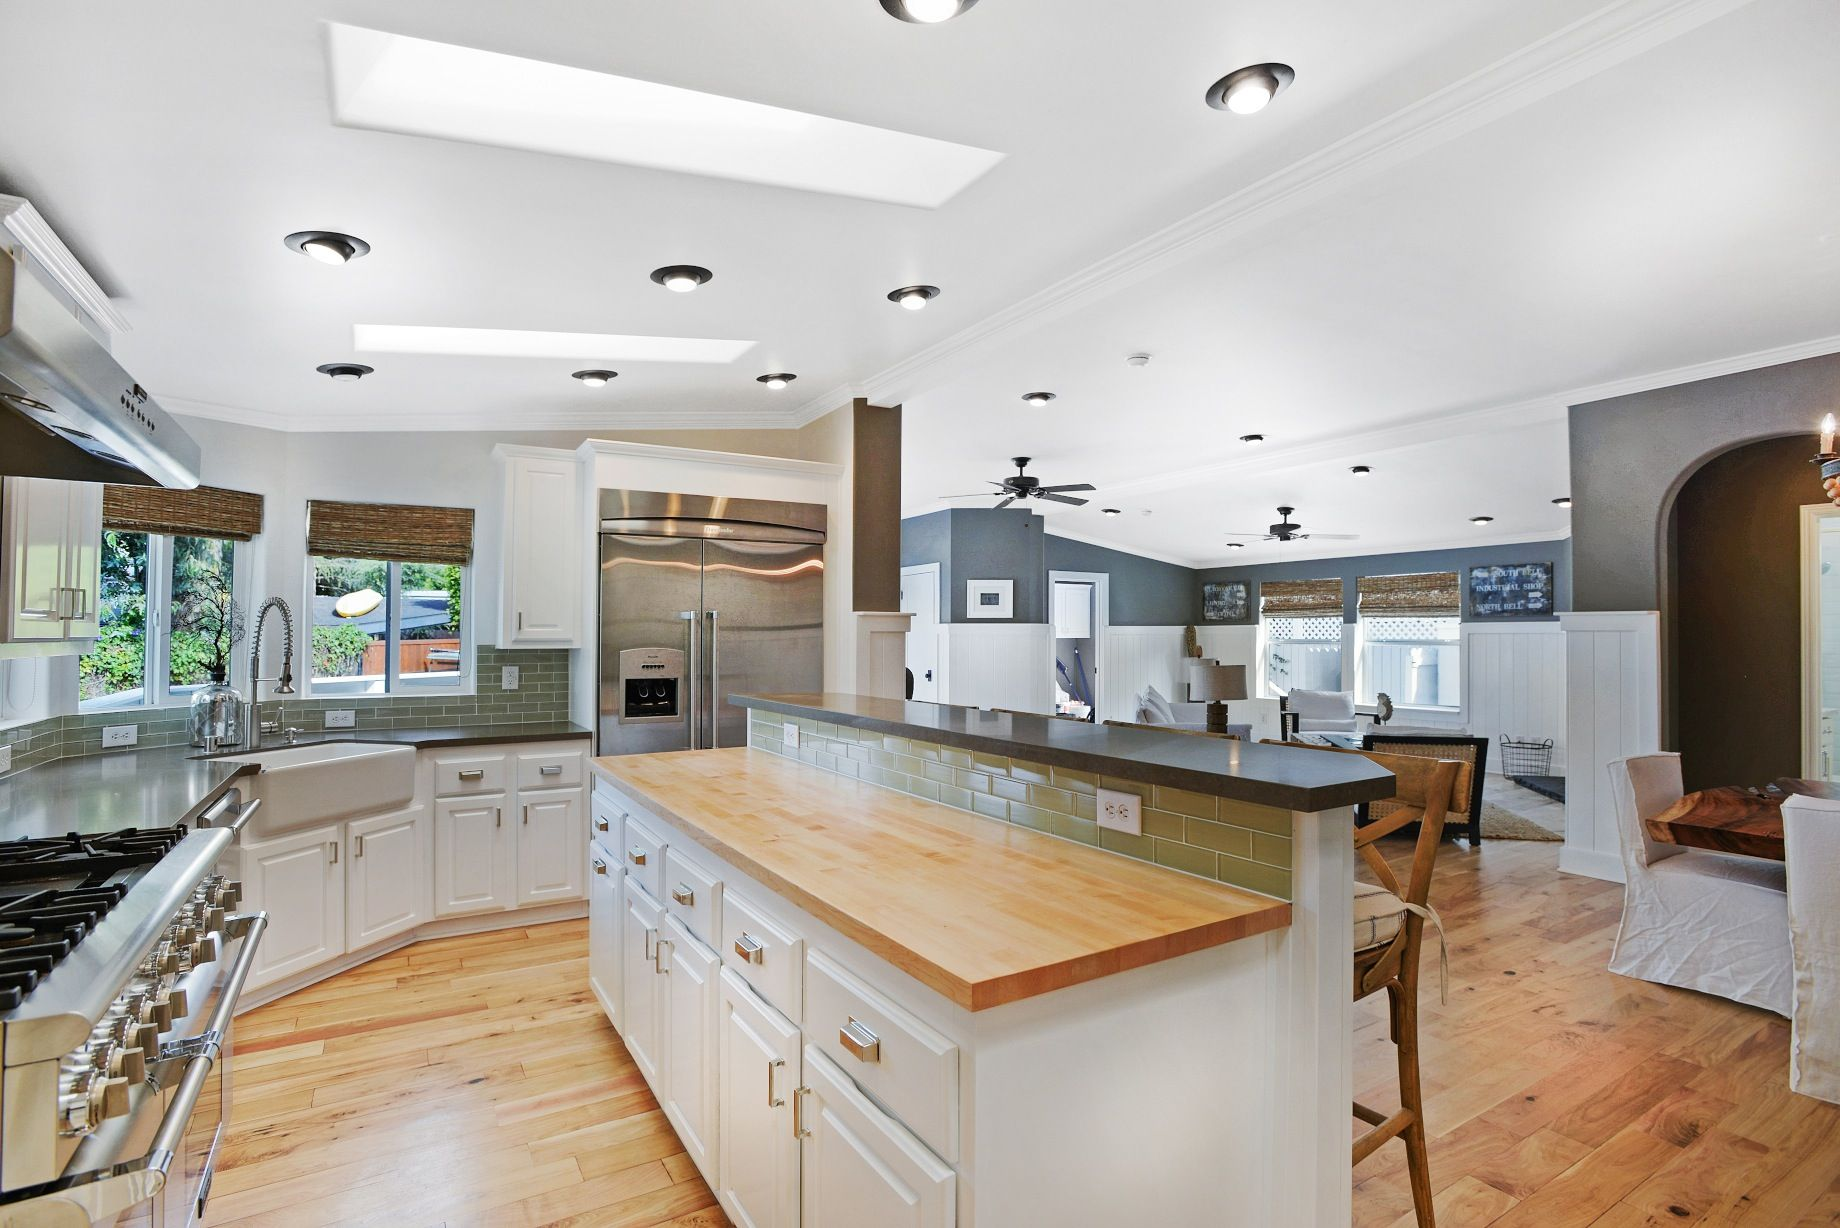 This Beautiful Malibu Manufactured Home Uses Several Great Manufactured  Home Interior Design Tricks That You Can Utilize In Your Home Easily.